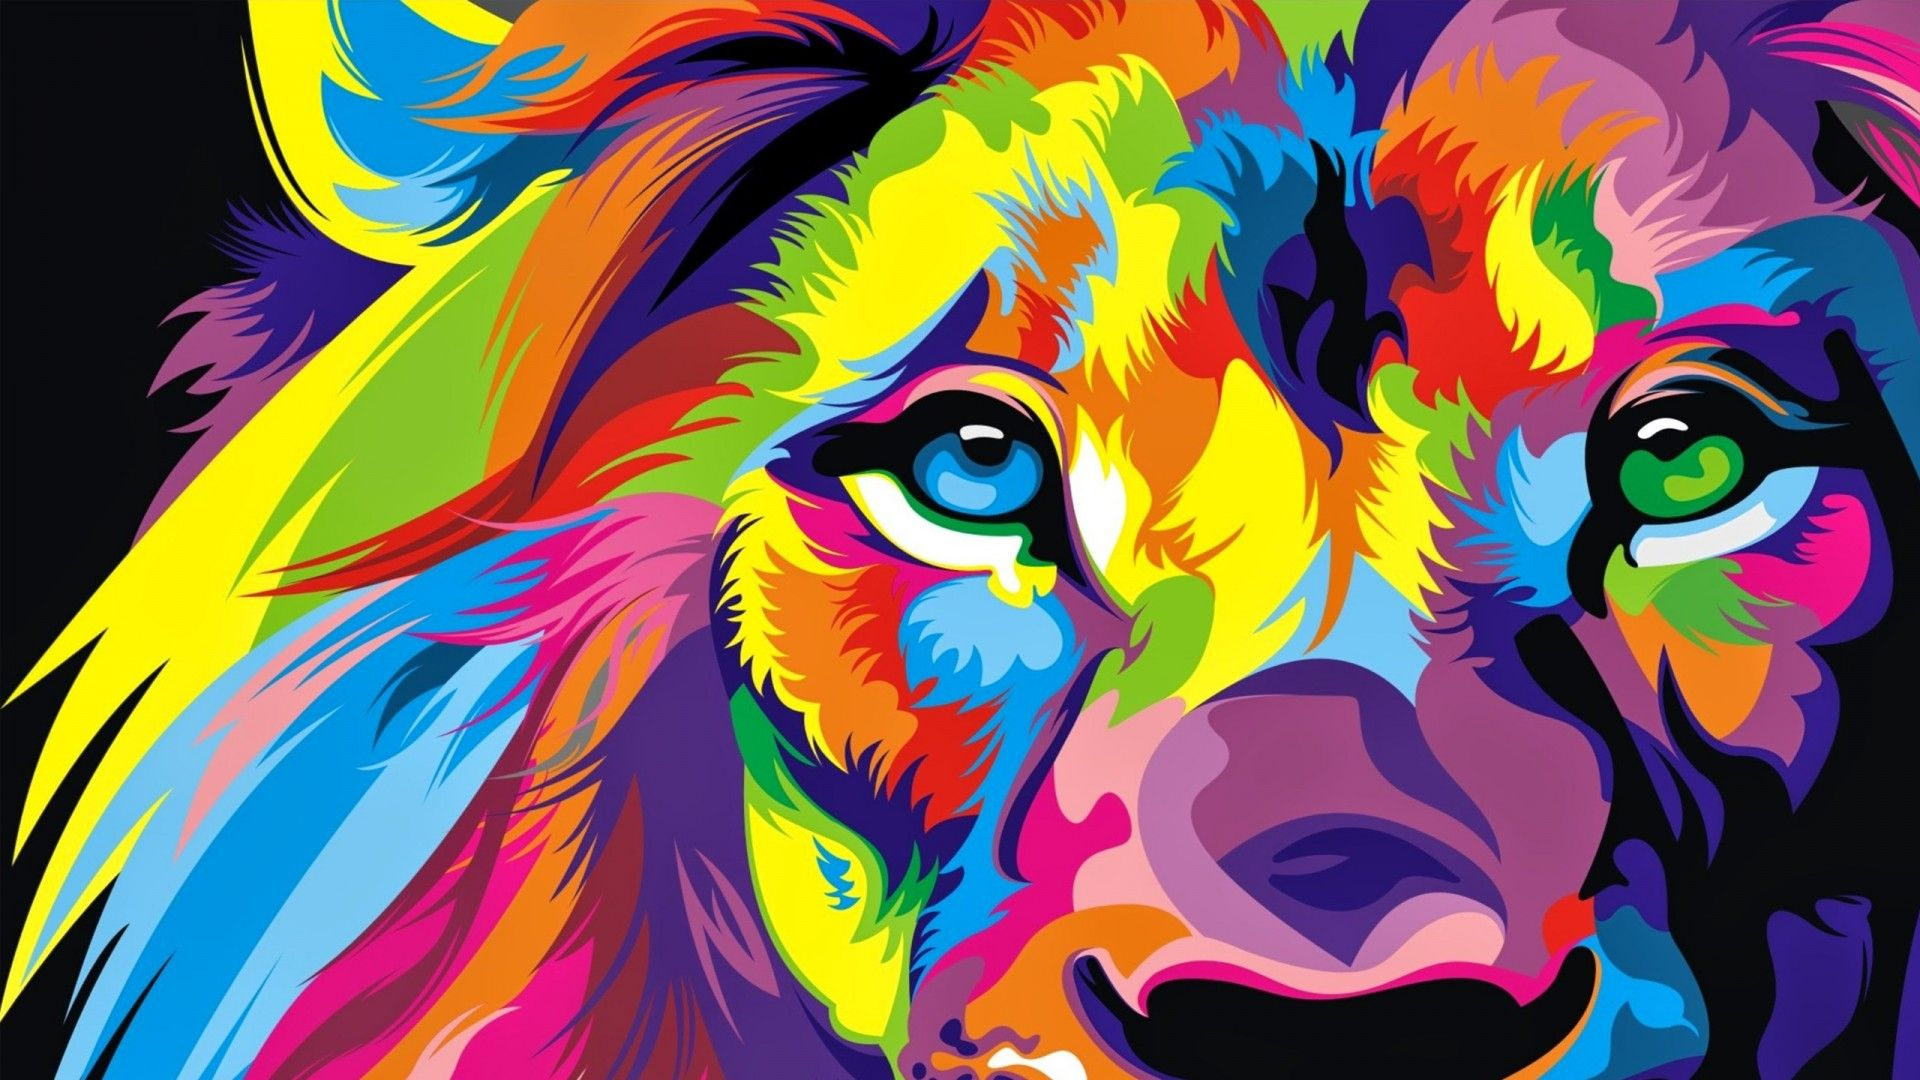 Lion Art full screen hd wallpaper